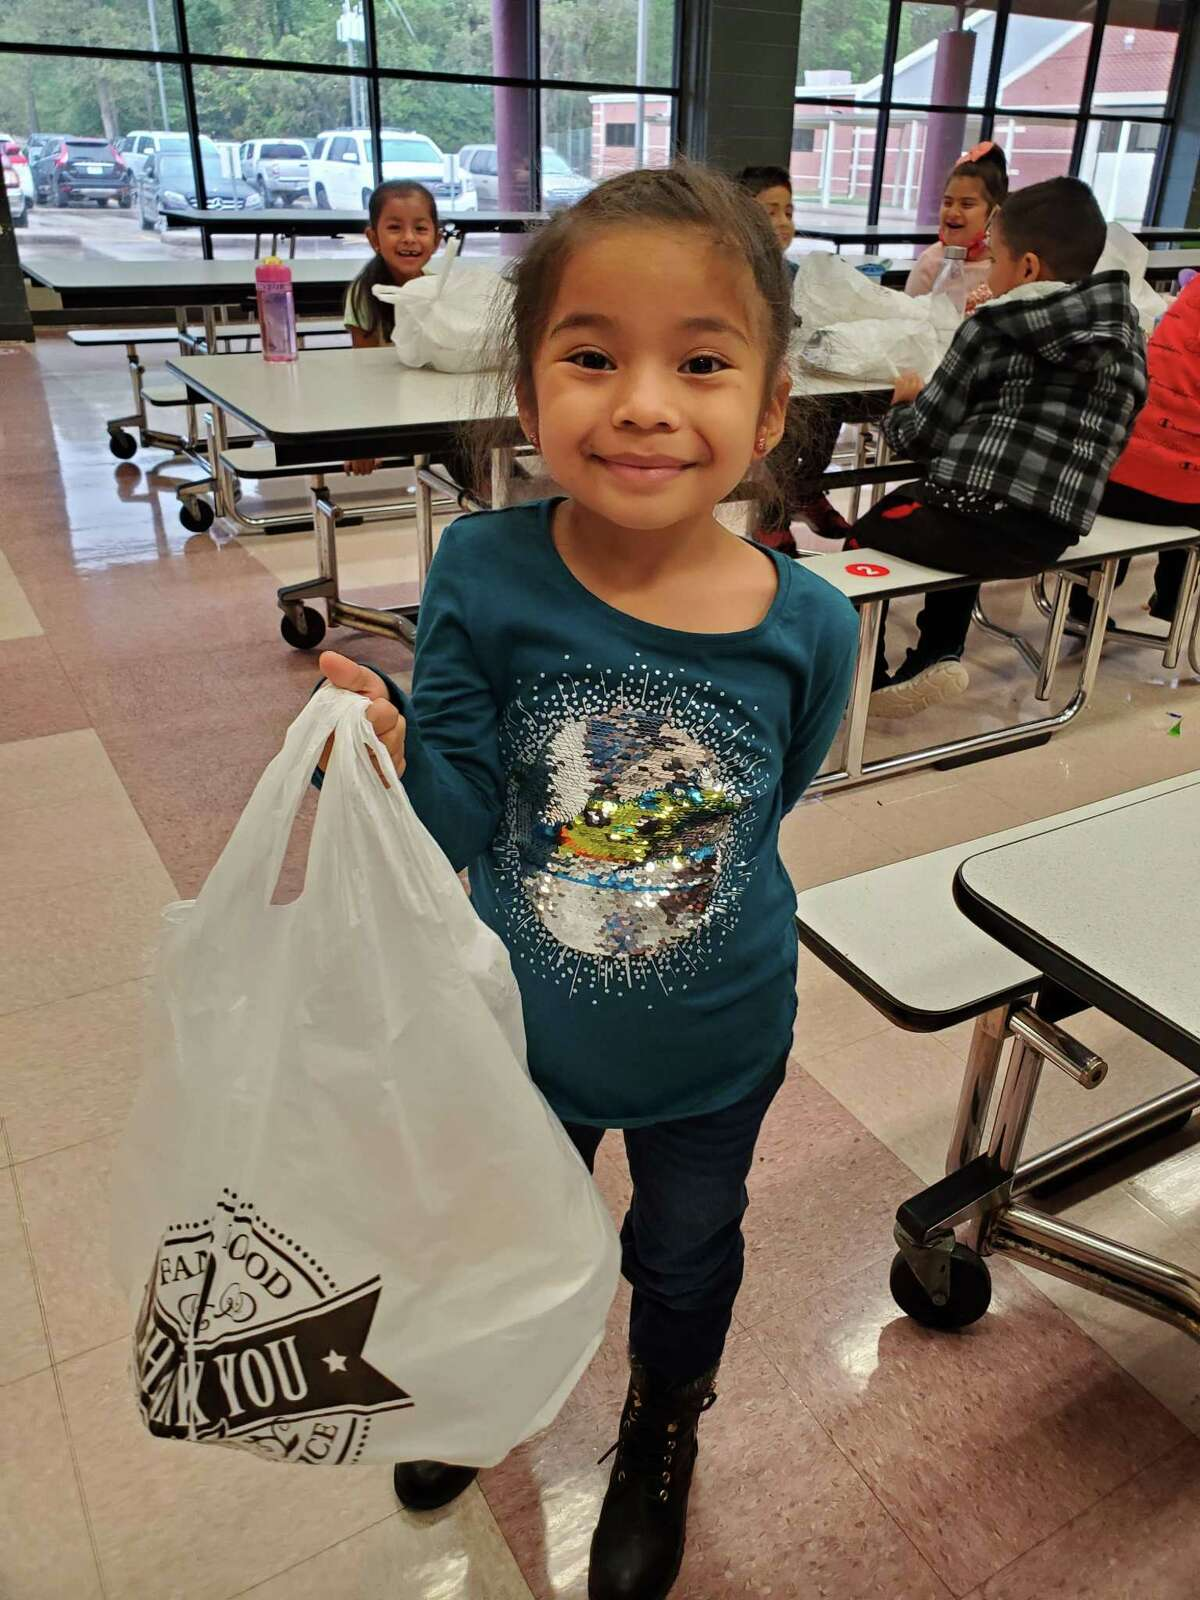 Magnolia ISD announced, Oct. 22, its plan to provide free meals for all students through at least December amid the COVID-19 pandemic, brought to fruition by available funding from the United States Department of Agriculture.